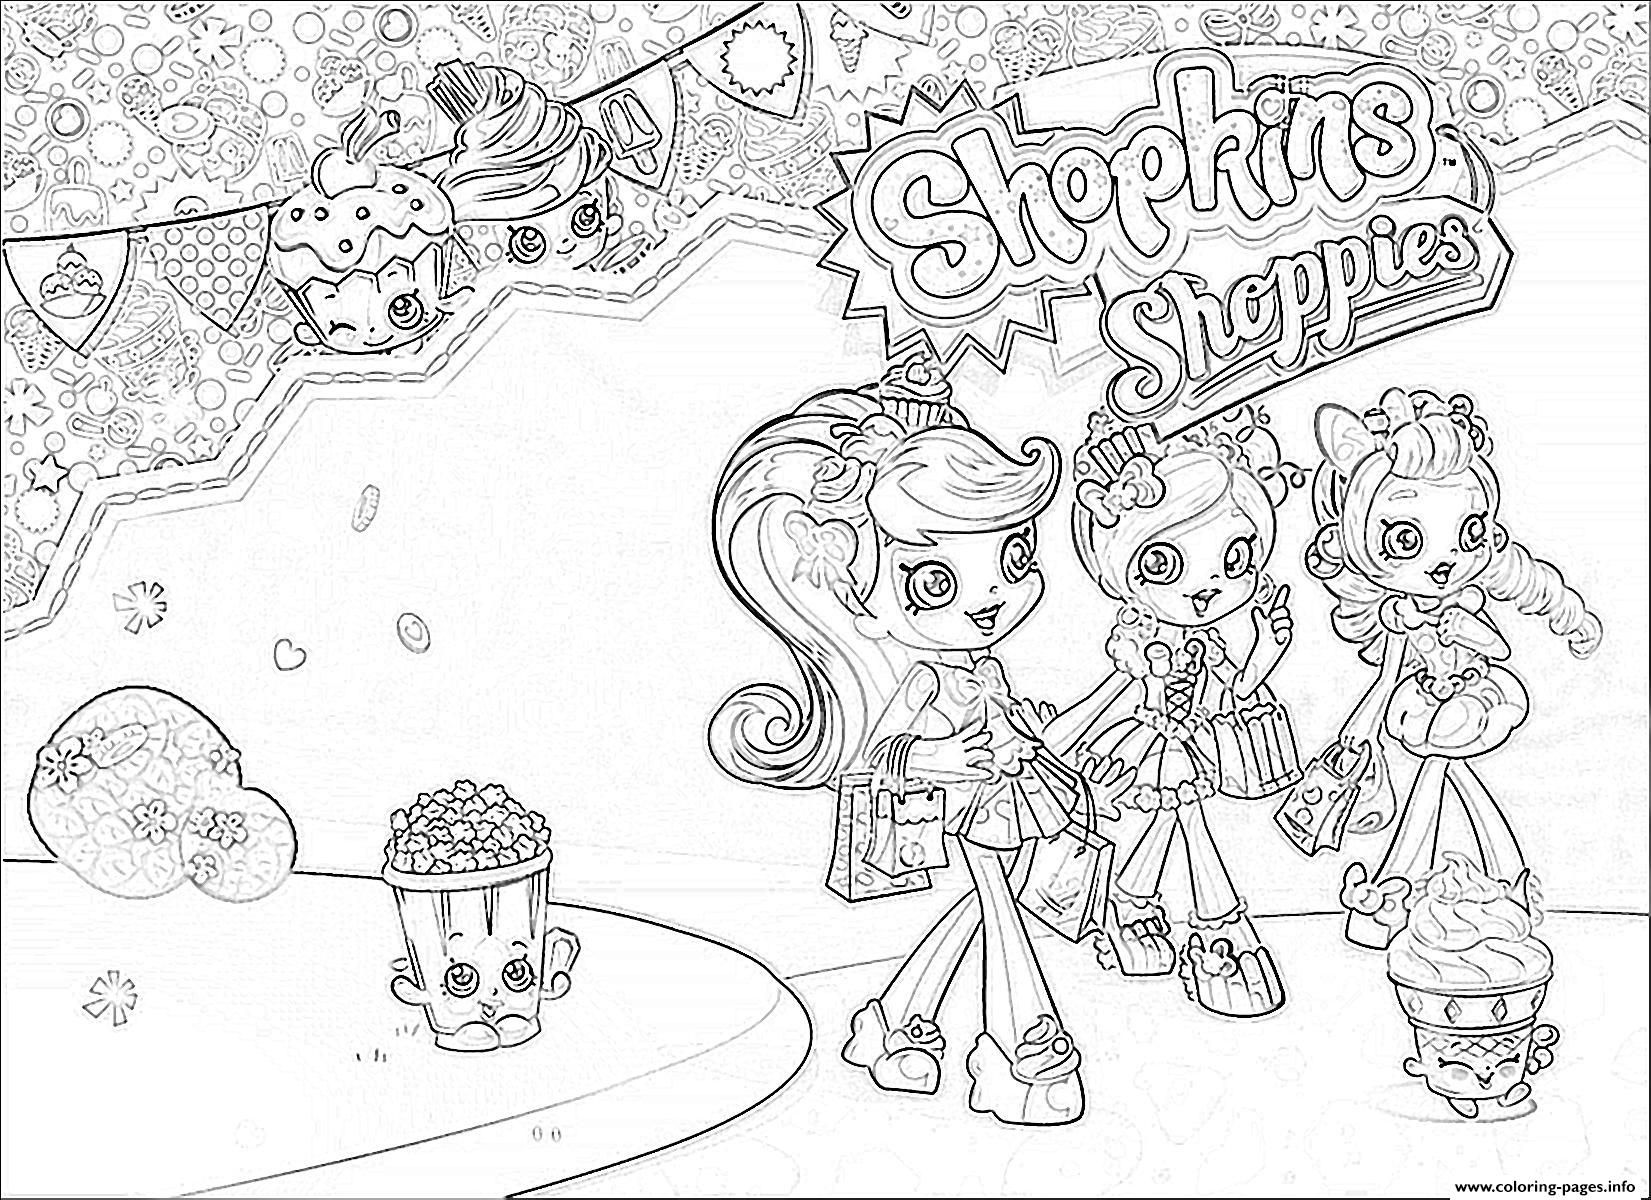 Print shopkins shoppies girls coloring pages | desenhos Sophia ...